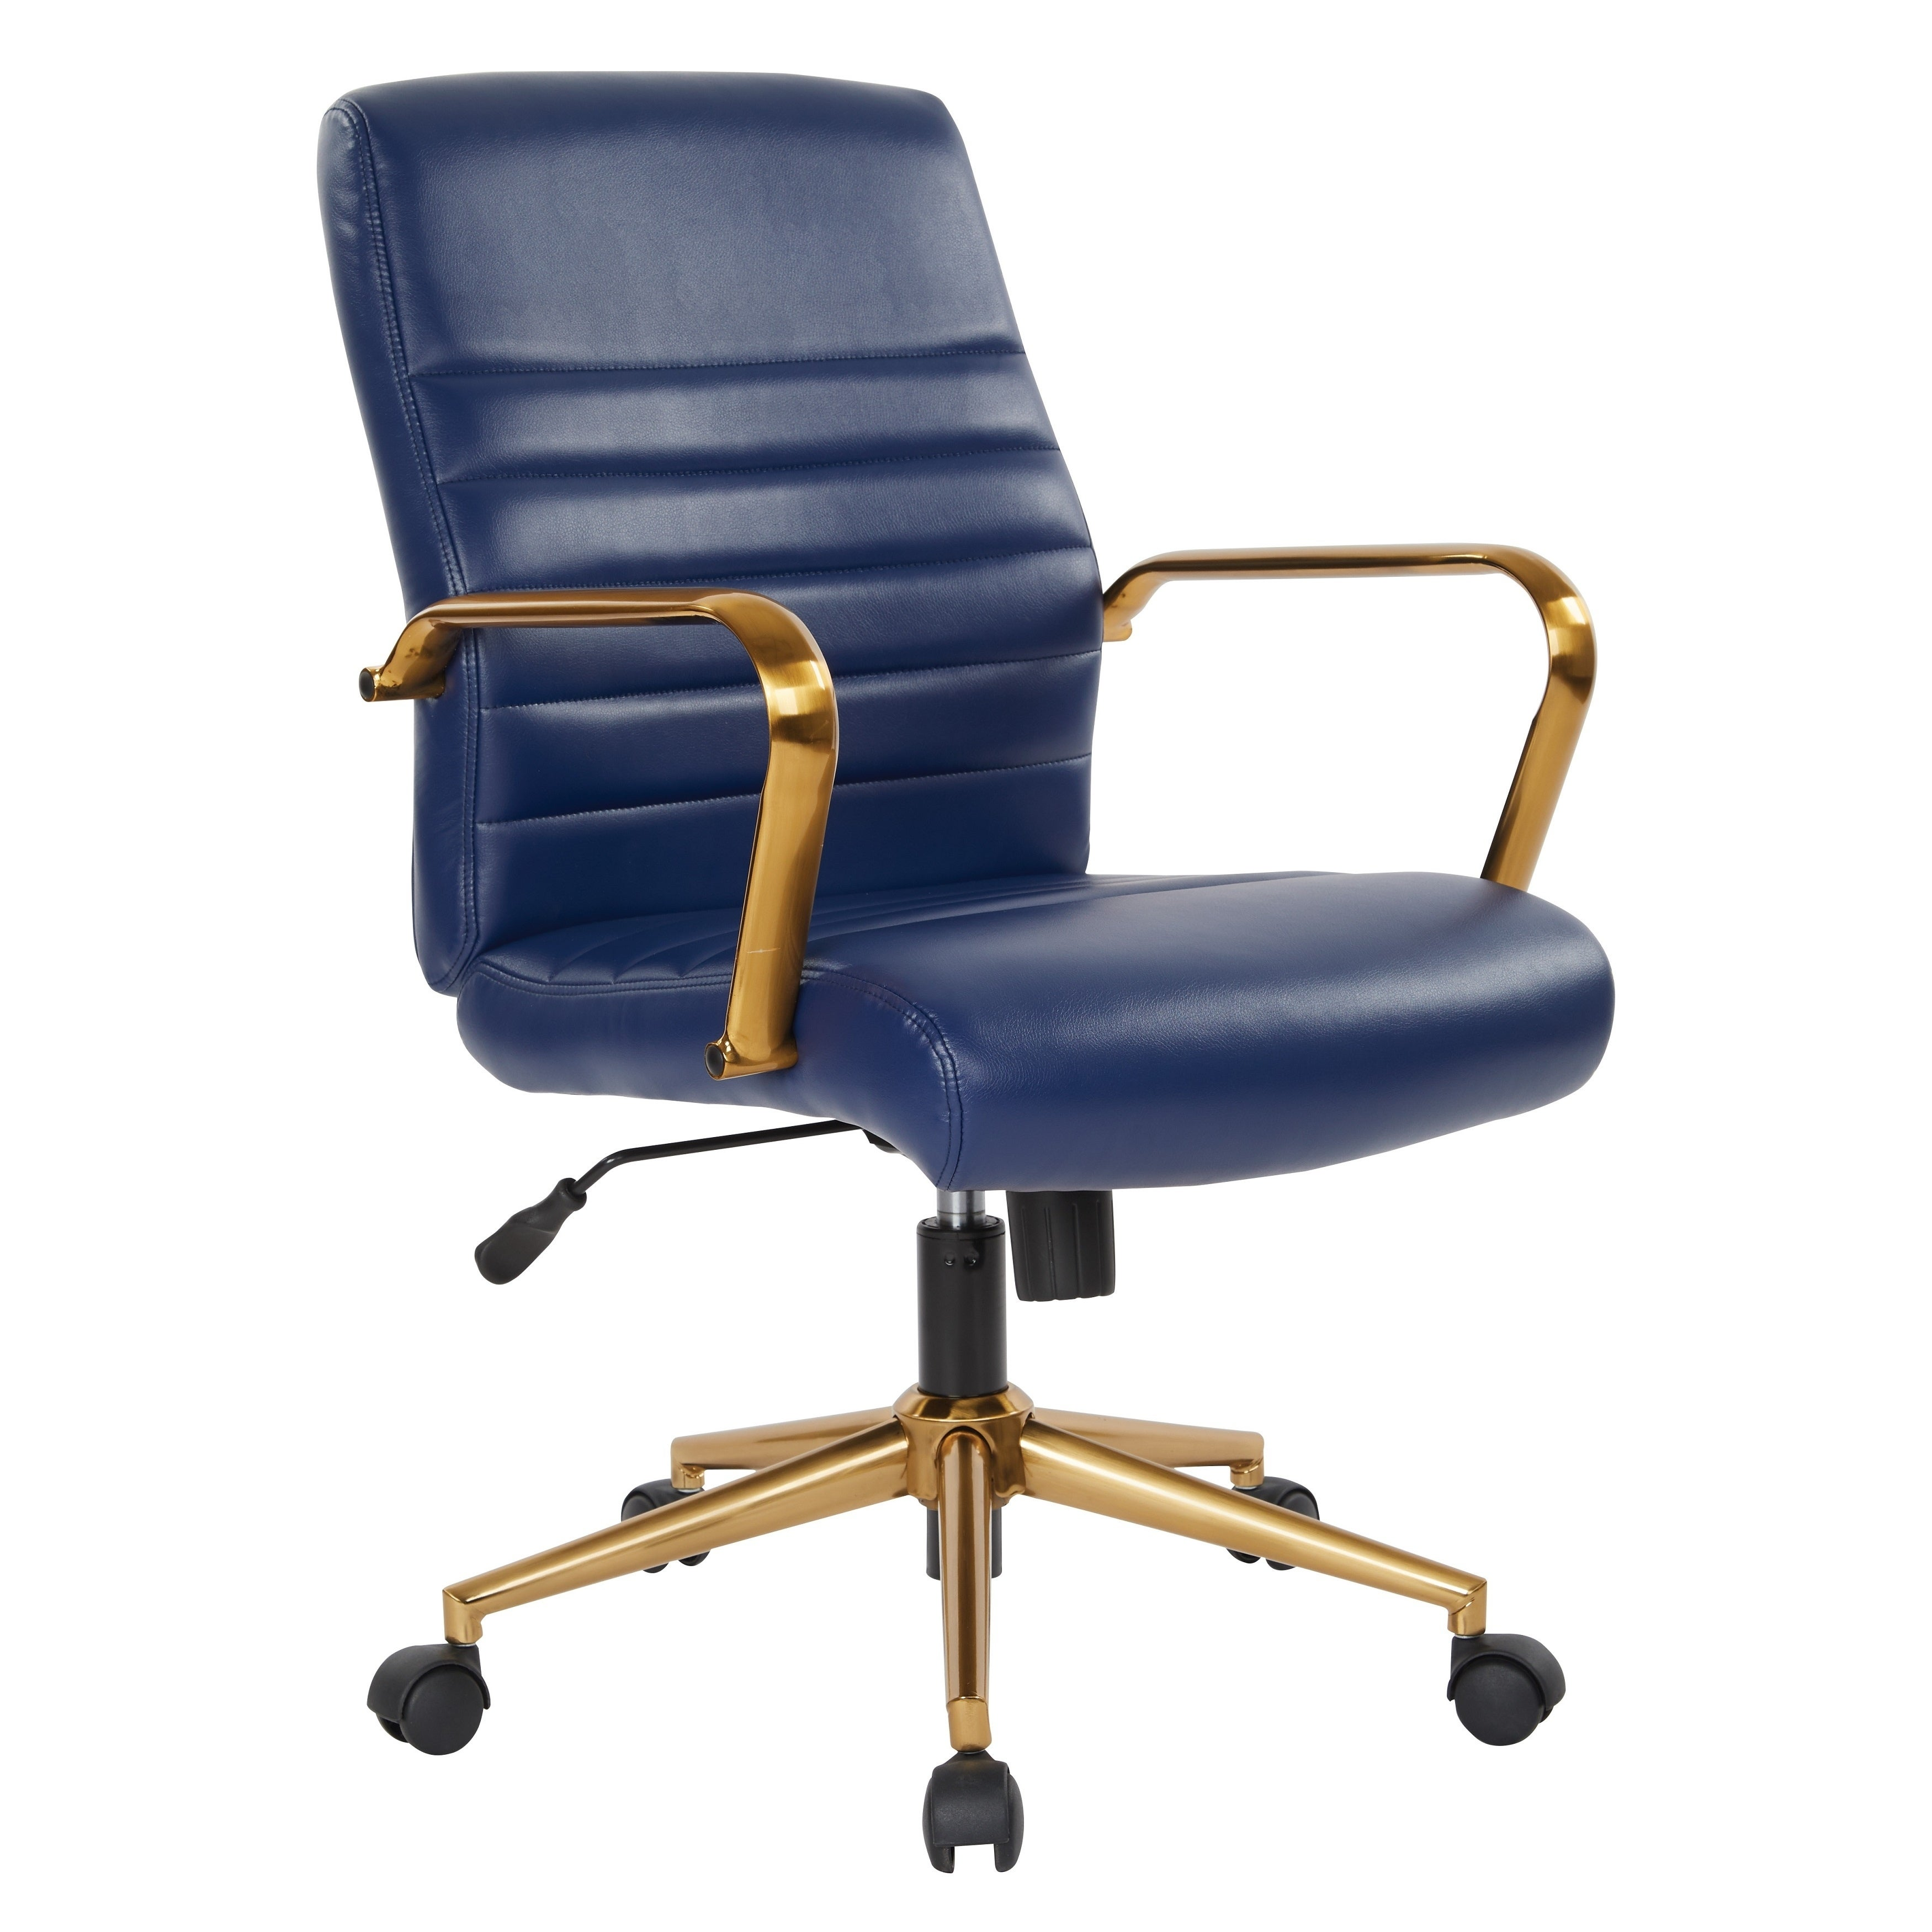 Don't miss a single chance to save. Here are more Office Chairs discounts.